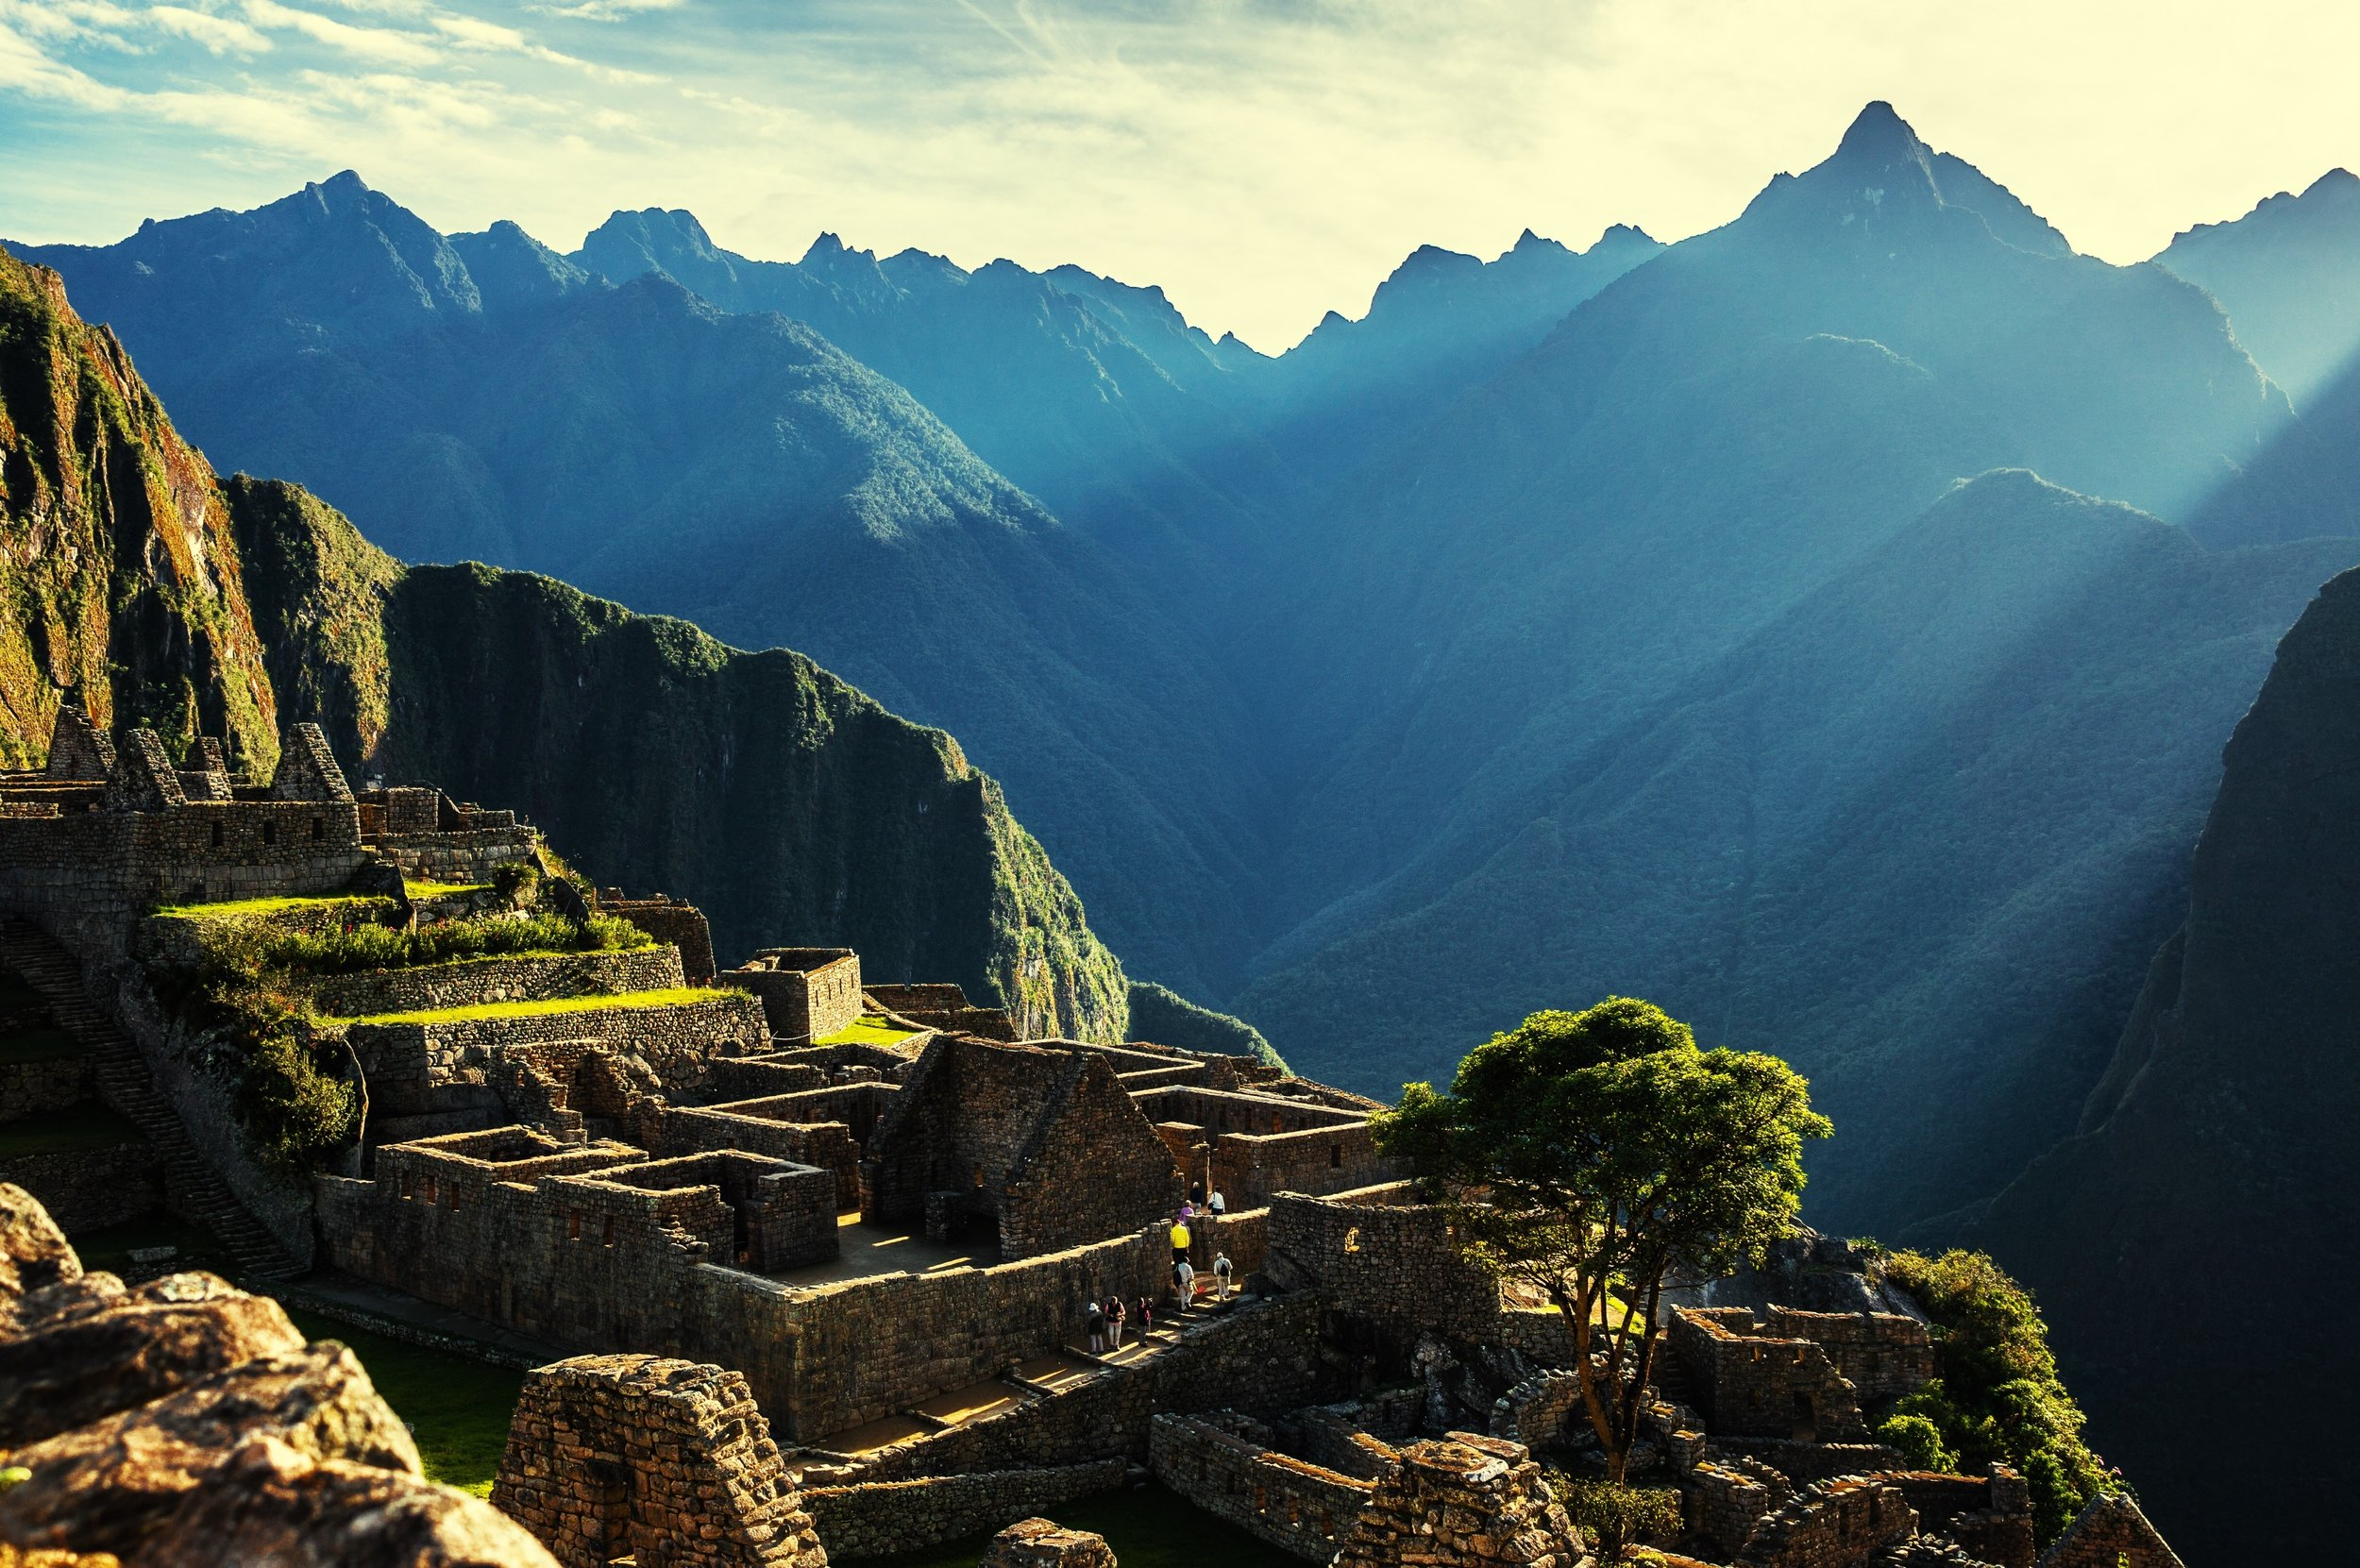 Sacred Valley - Between Cusco and Machu Picchu lies the mysterious sacred valley of the Incas.Get to know the ancient Inca sites of Pisac, Urubamba,Maras, Moray Ollantaytambo and Chinchero in our one day mystical tour.